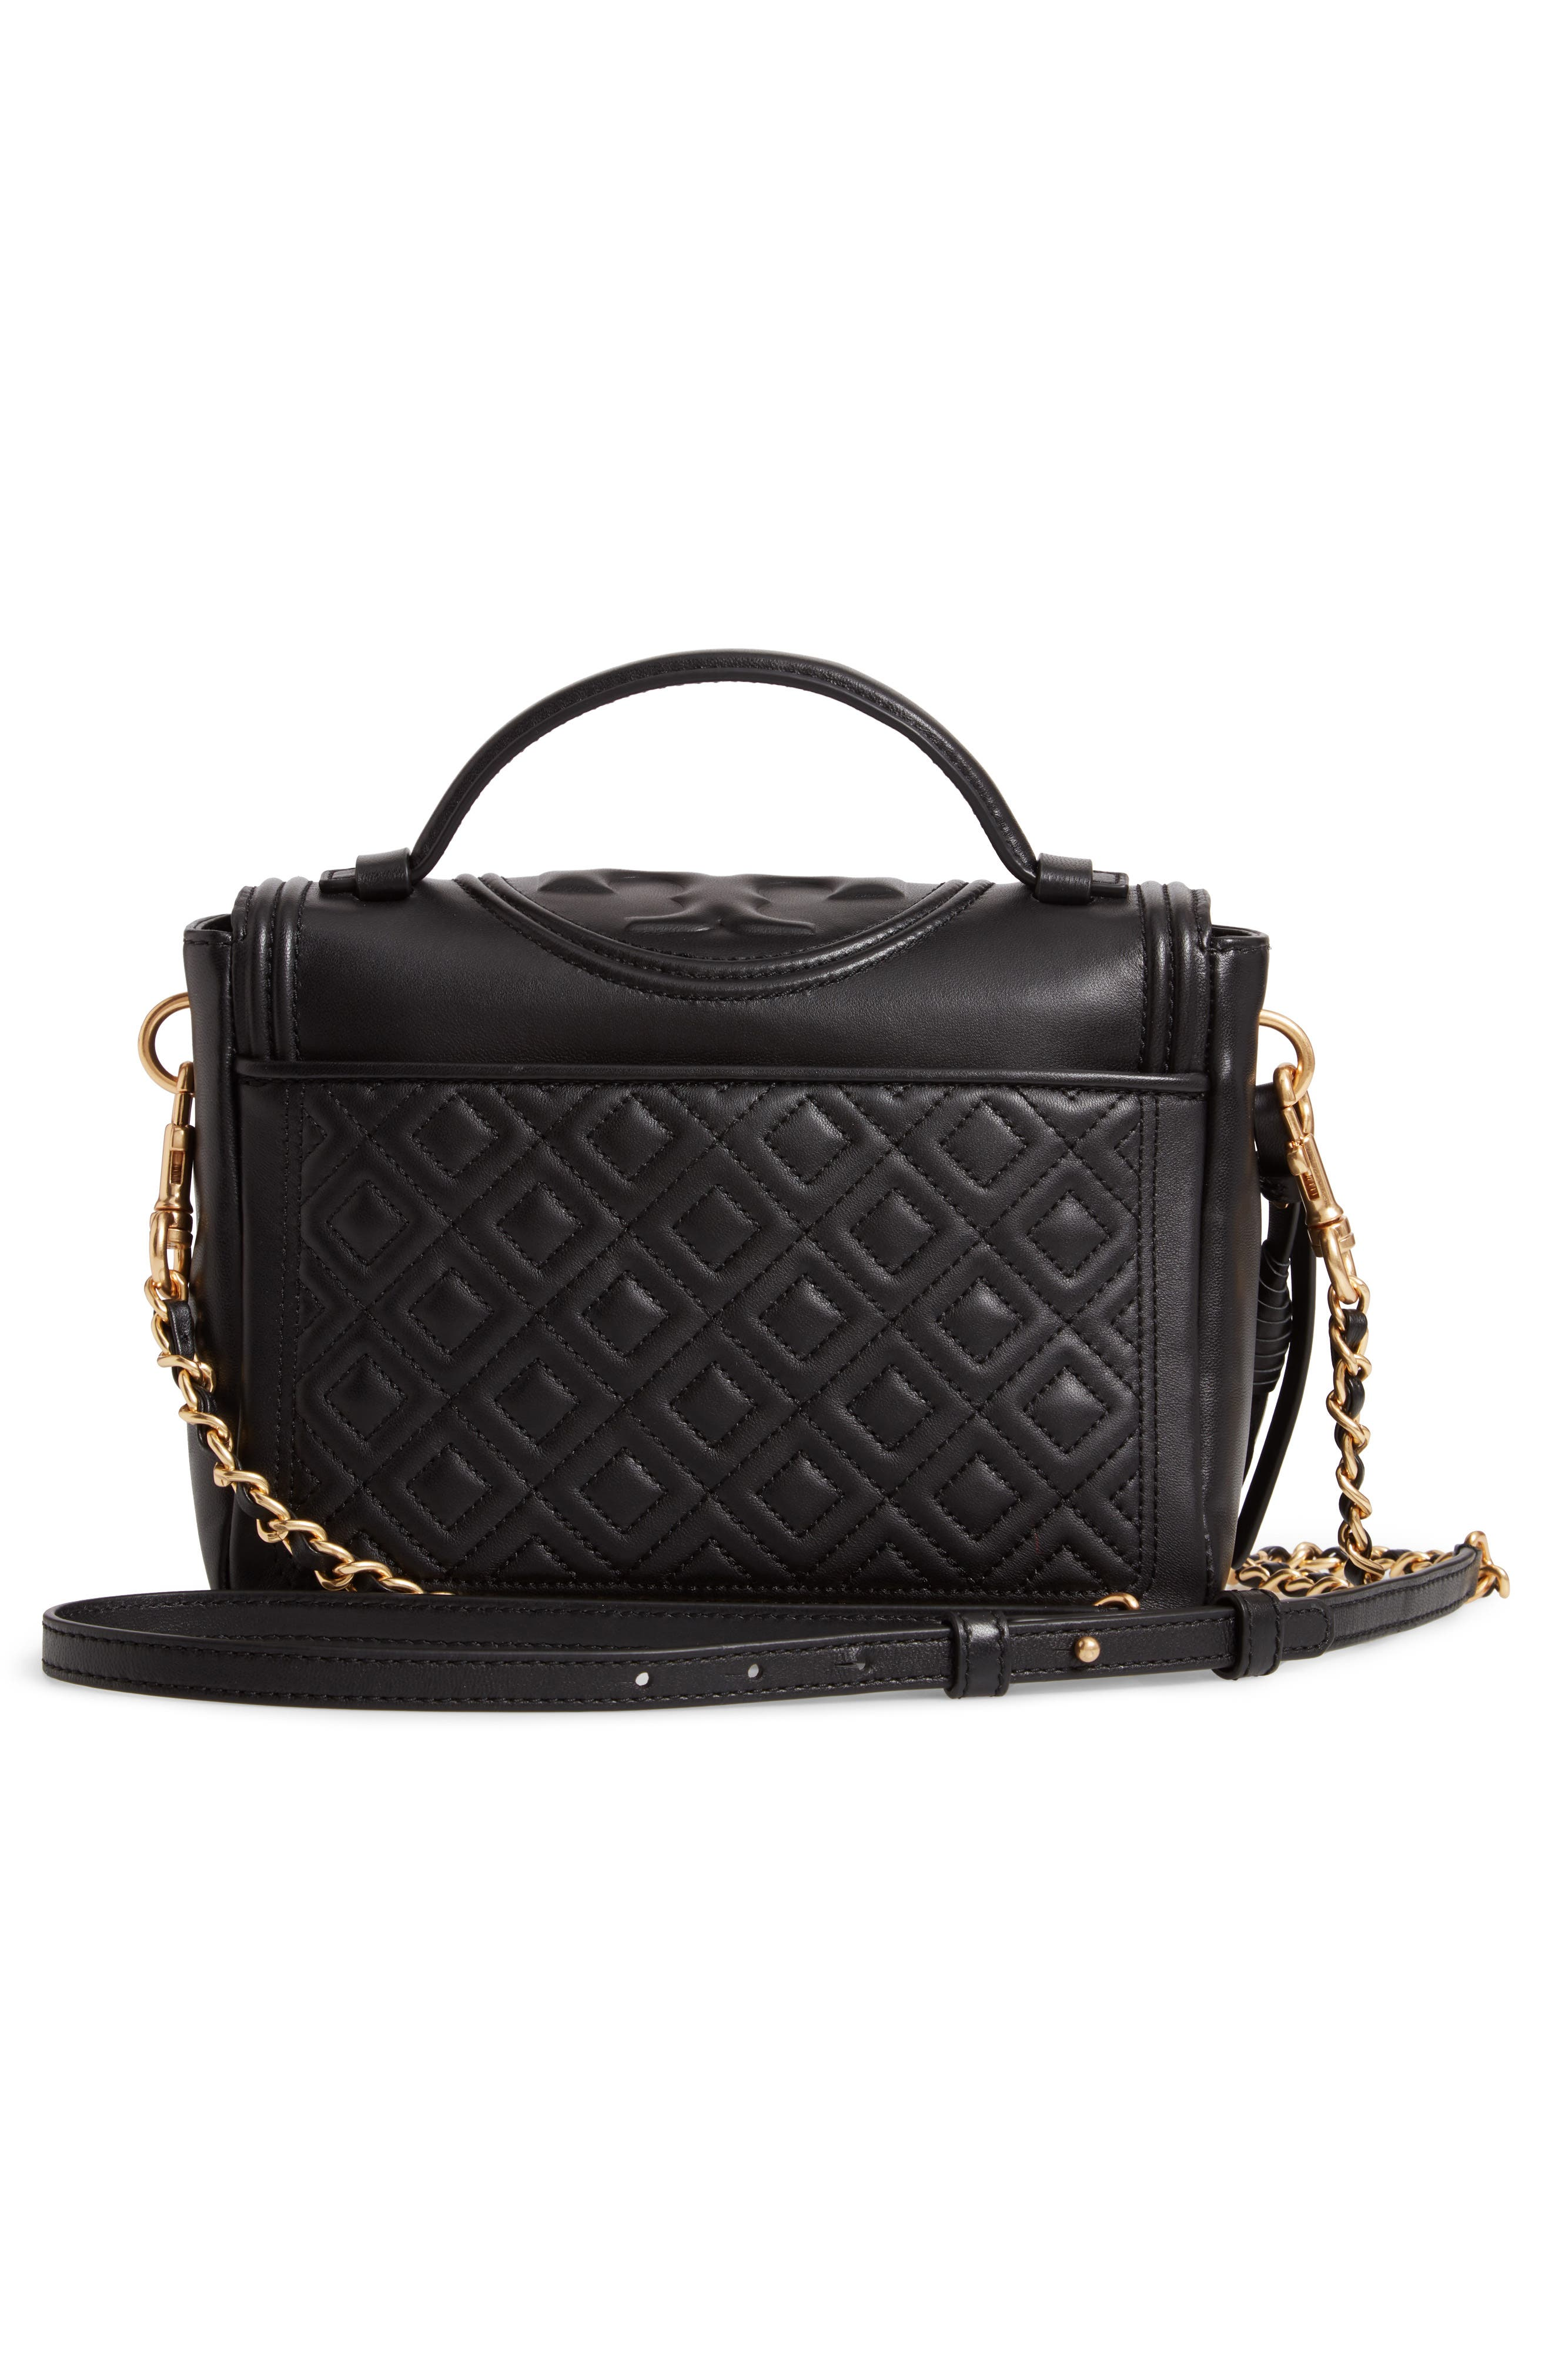 TORY BURCH,                             Fleming Quilted Leather Top Handle Satchel,                             Alternate thumbnail 3, color,                             BLACK